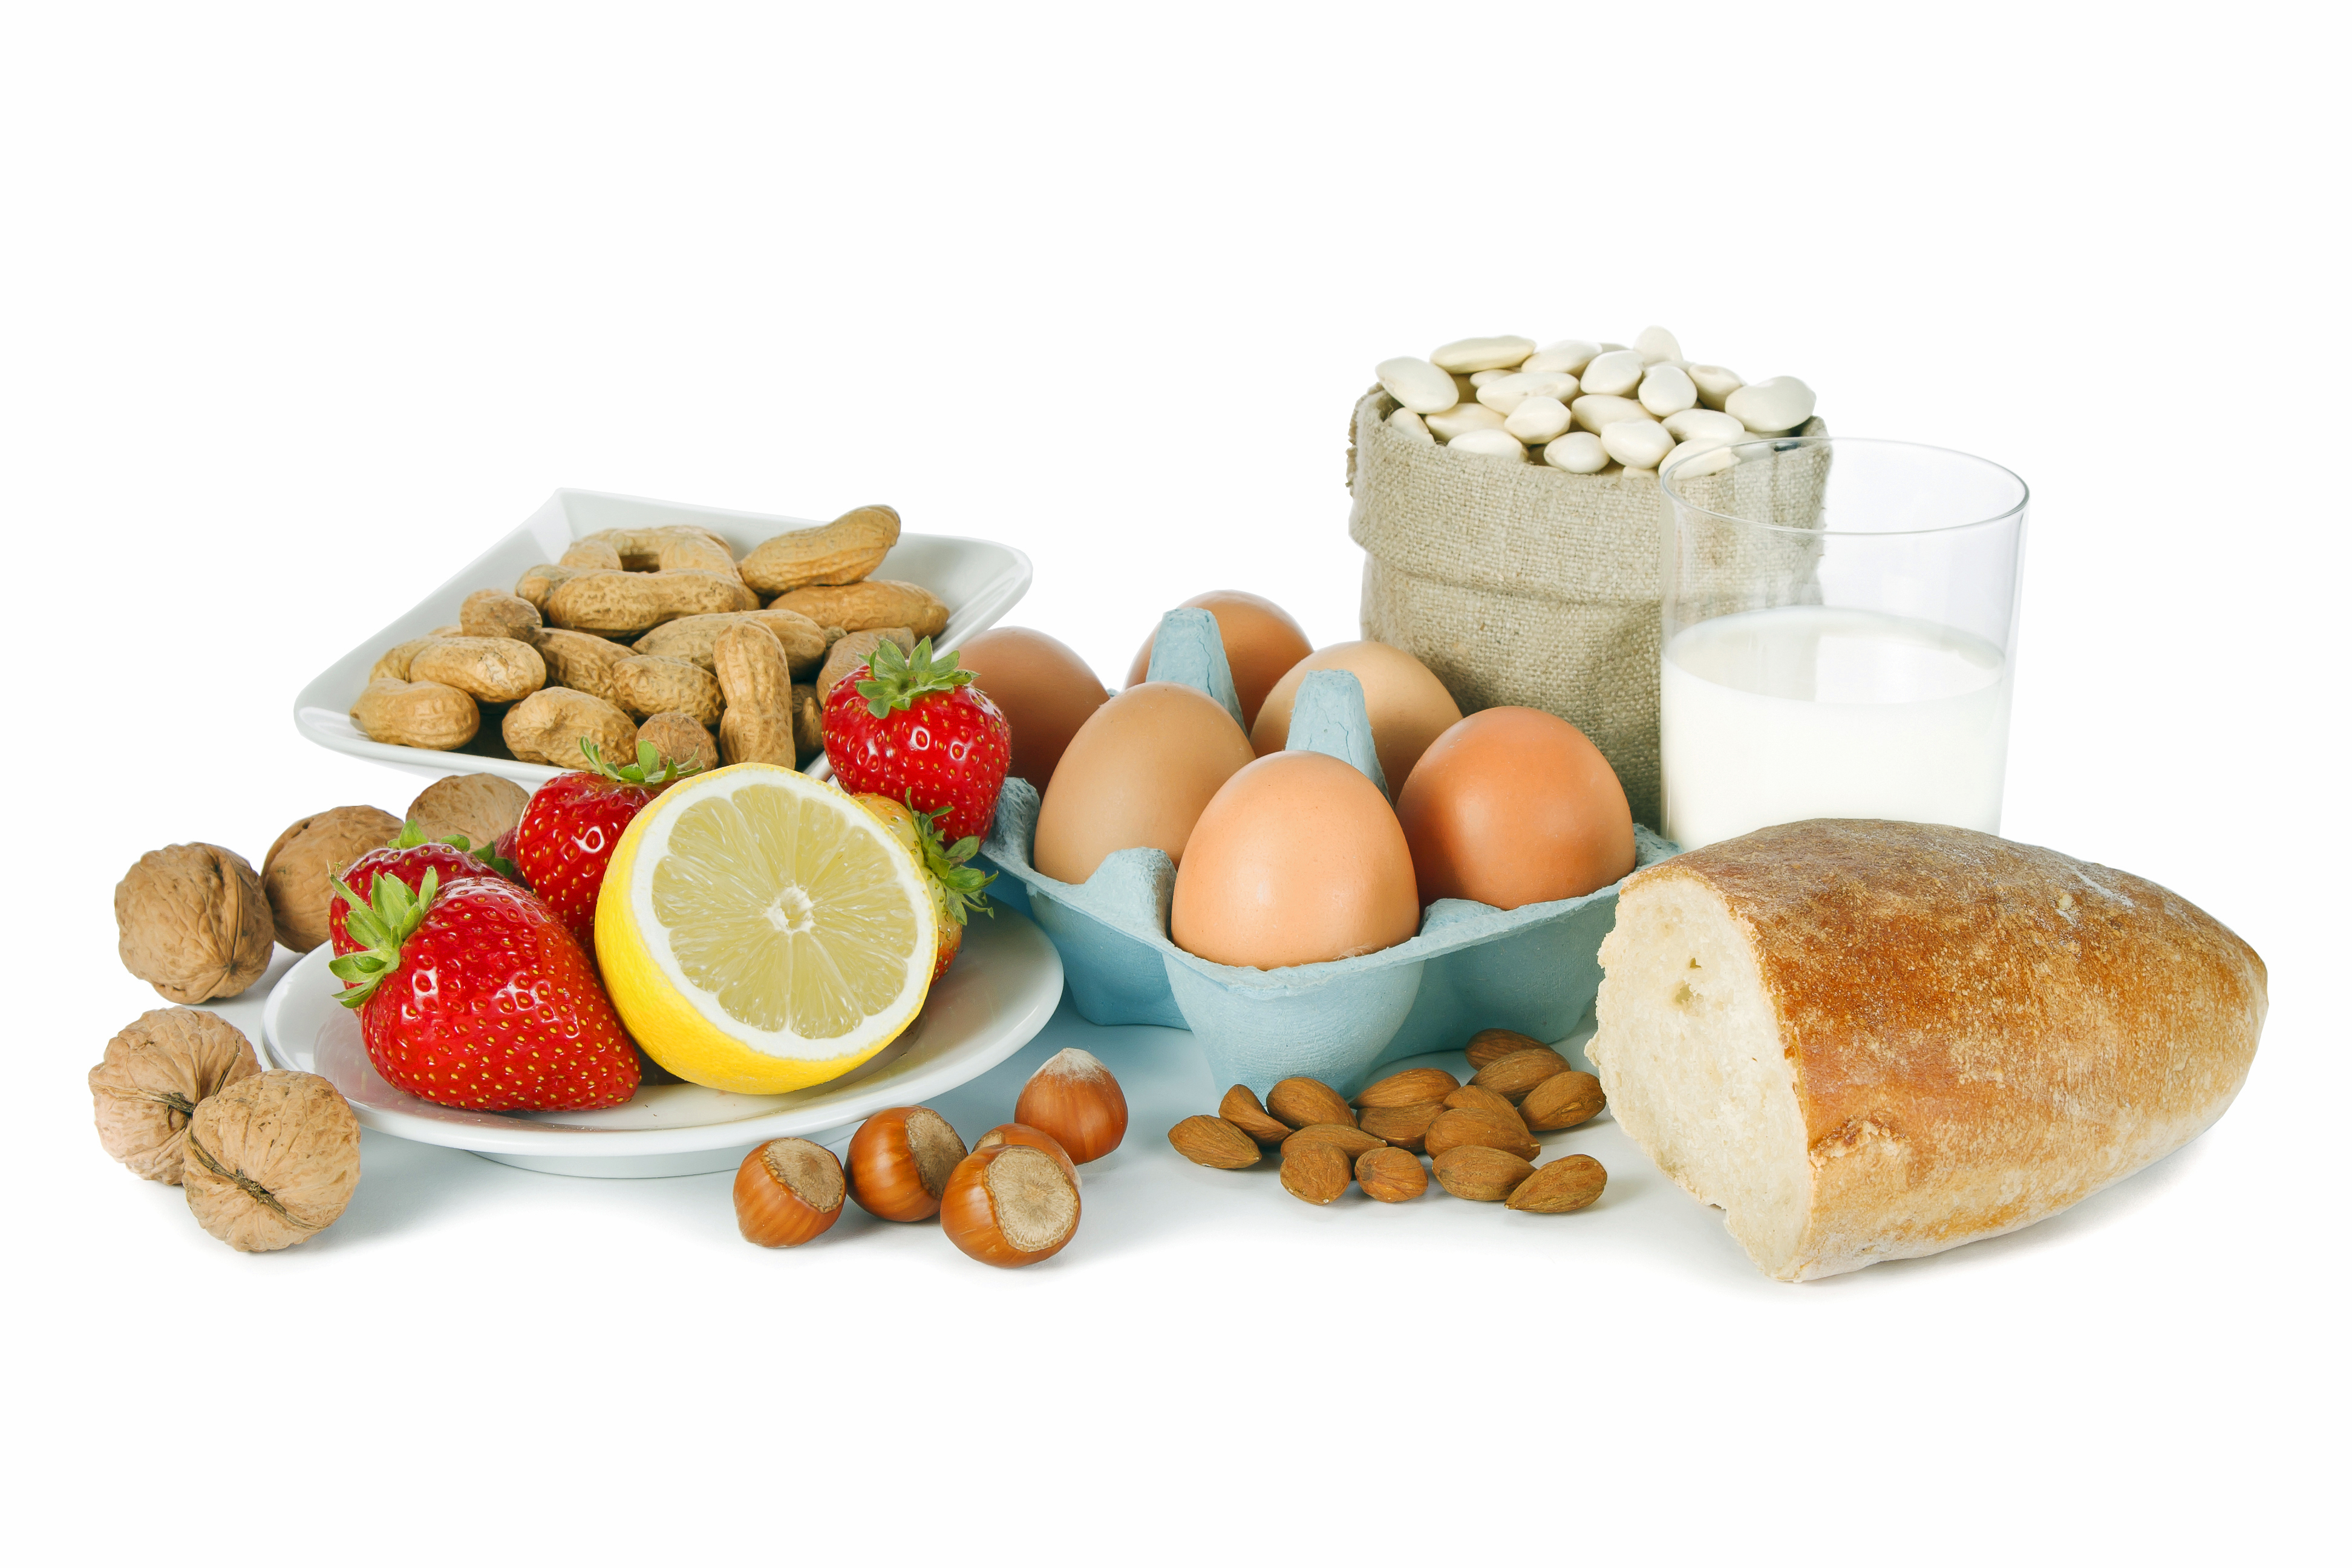 Picture of foods that cause allergies such as bread, strawberries, nuts, milk, eggs, and fruit.